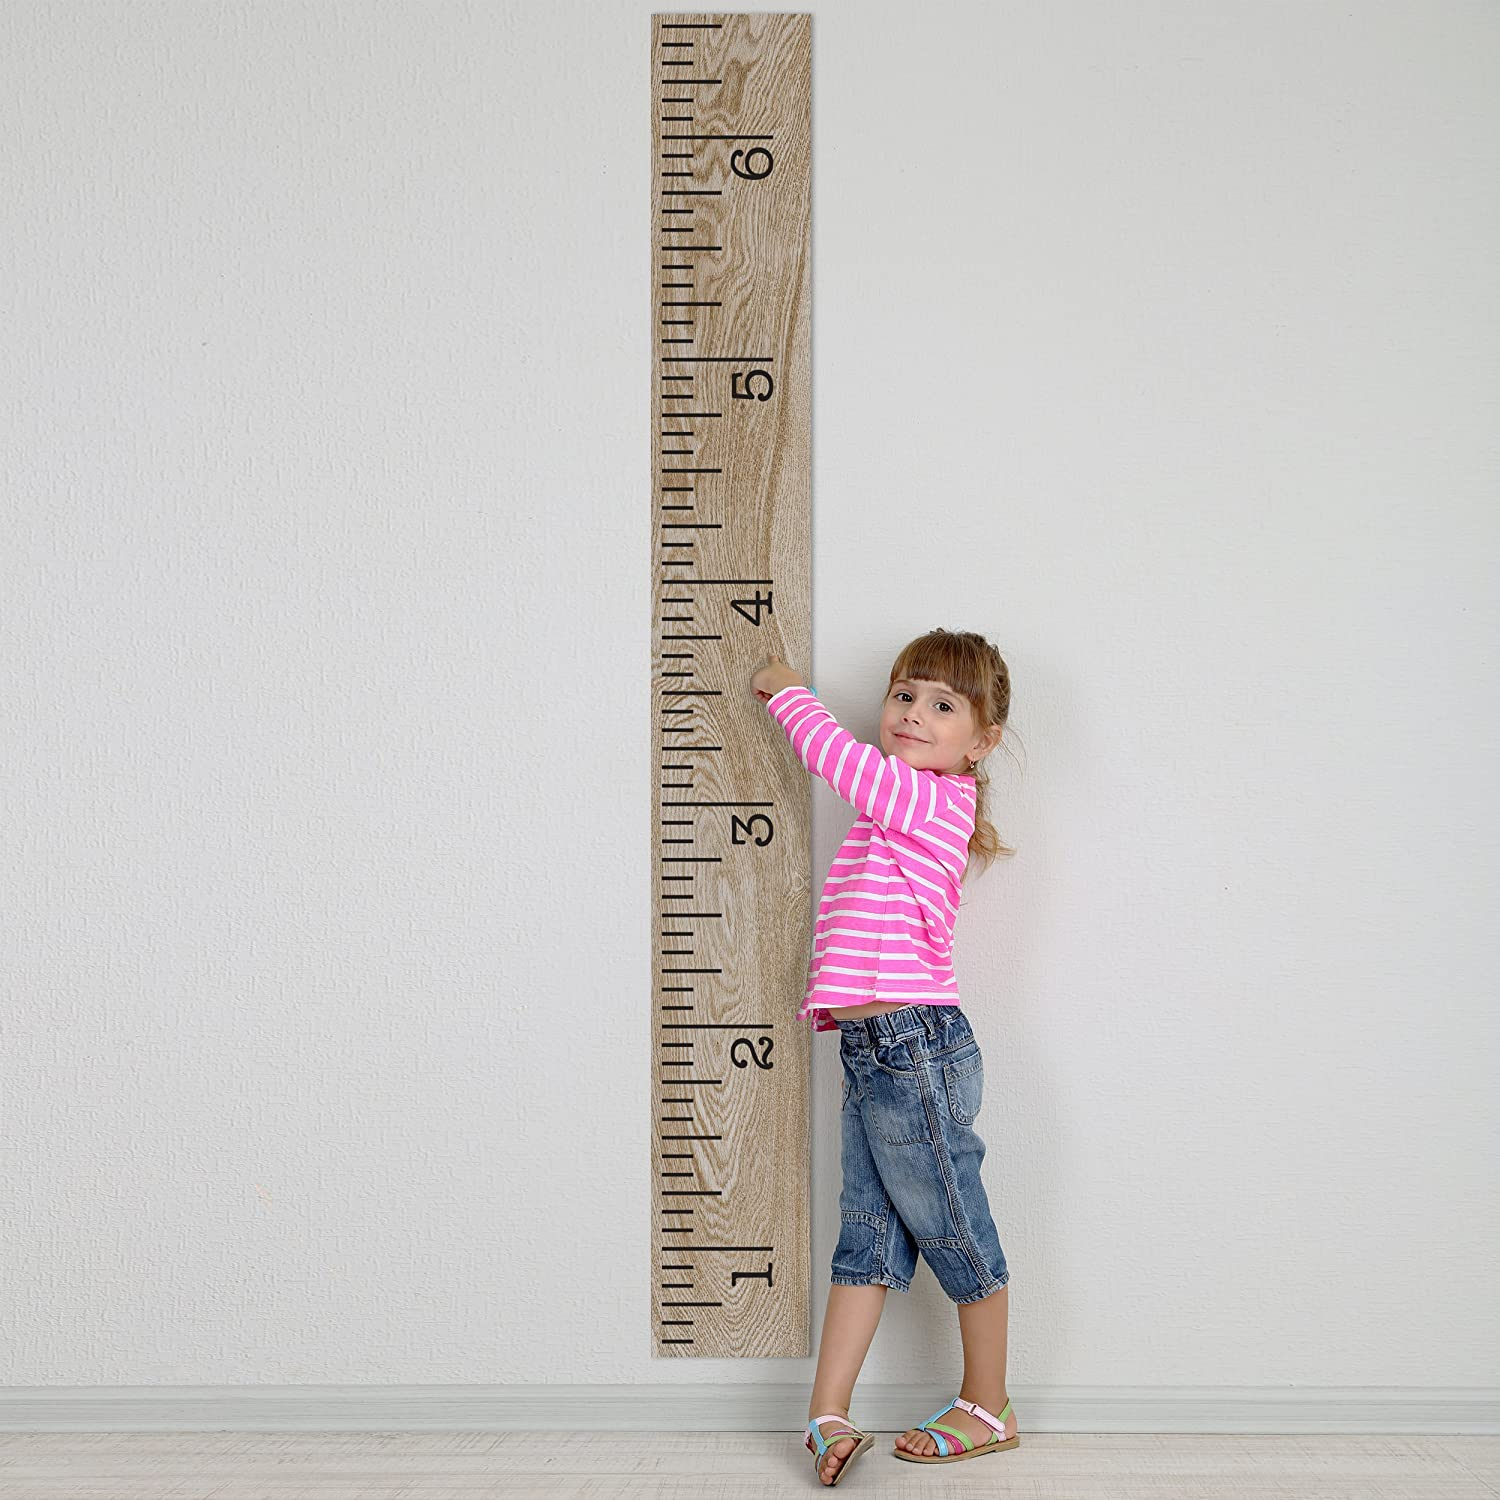 Kids growth chart decal stickers wall diy applications home decor product description full growth chart nvjuhfo Gallery